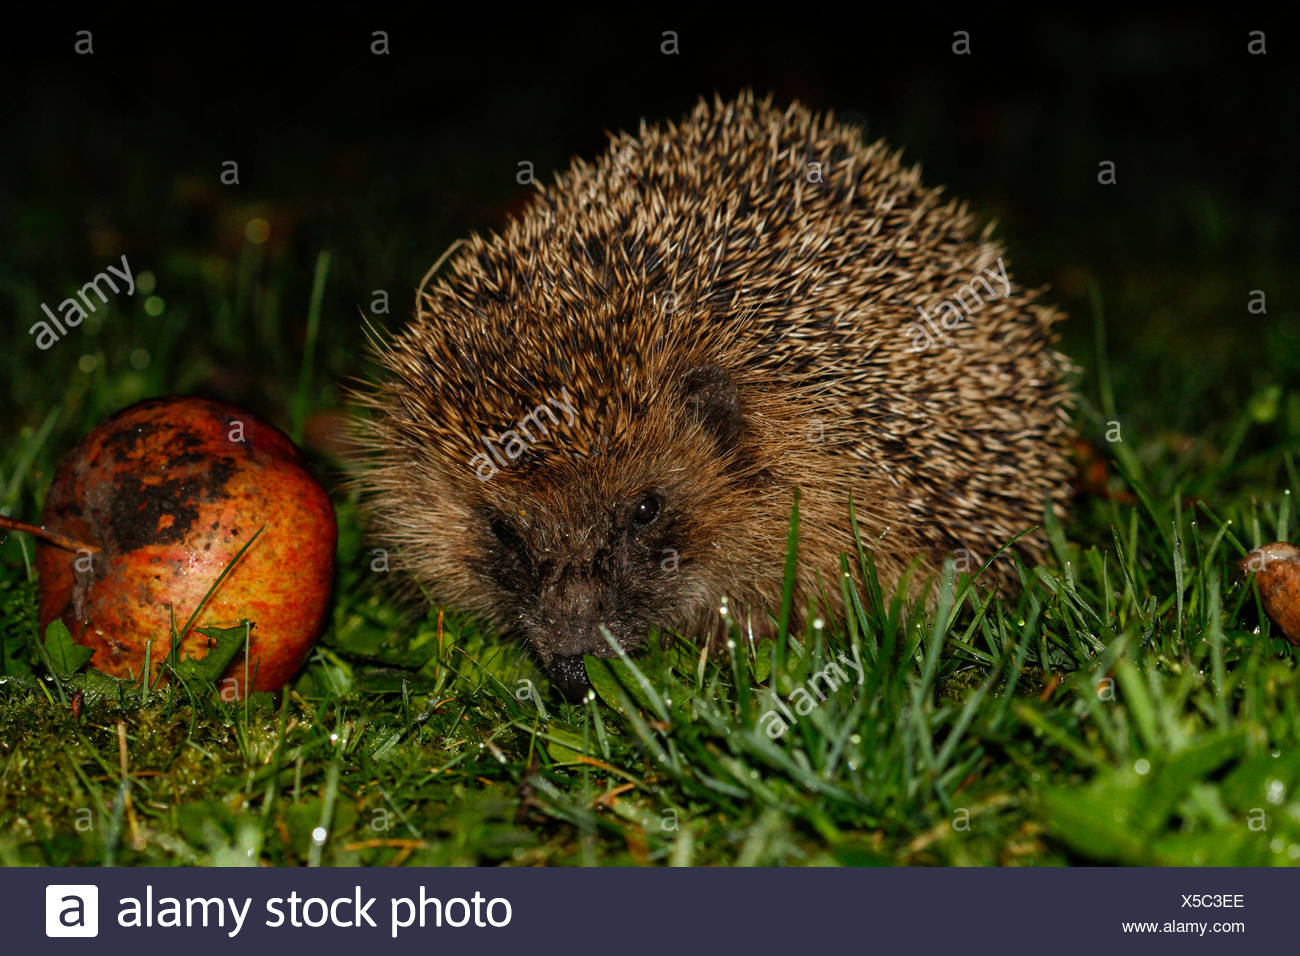 Young hedgehog (Erinaceus europaeus) with red apple, Bavaria, Germany - Stock Image